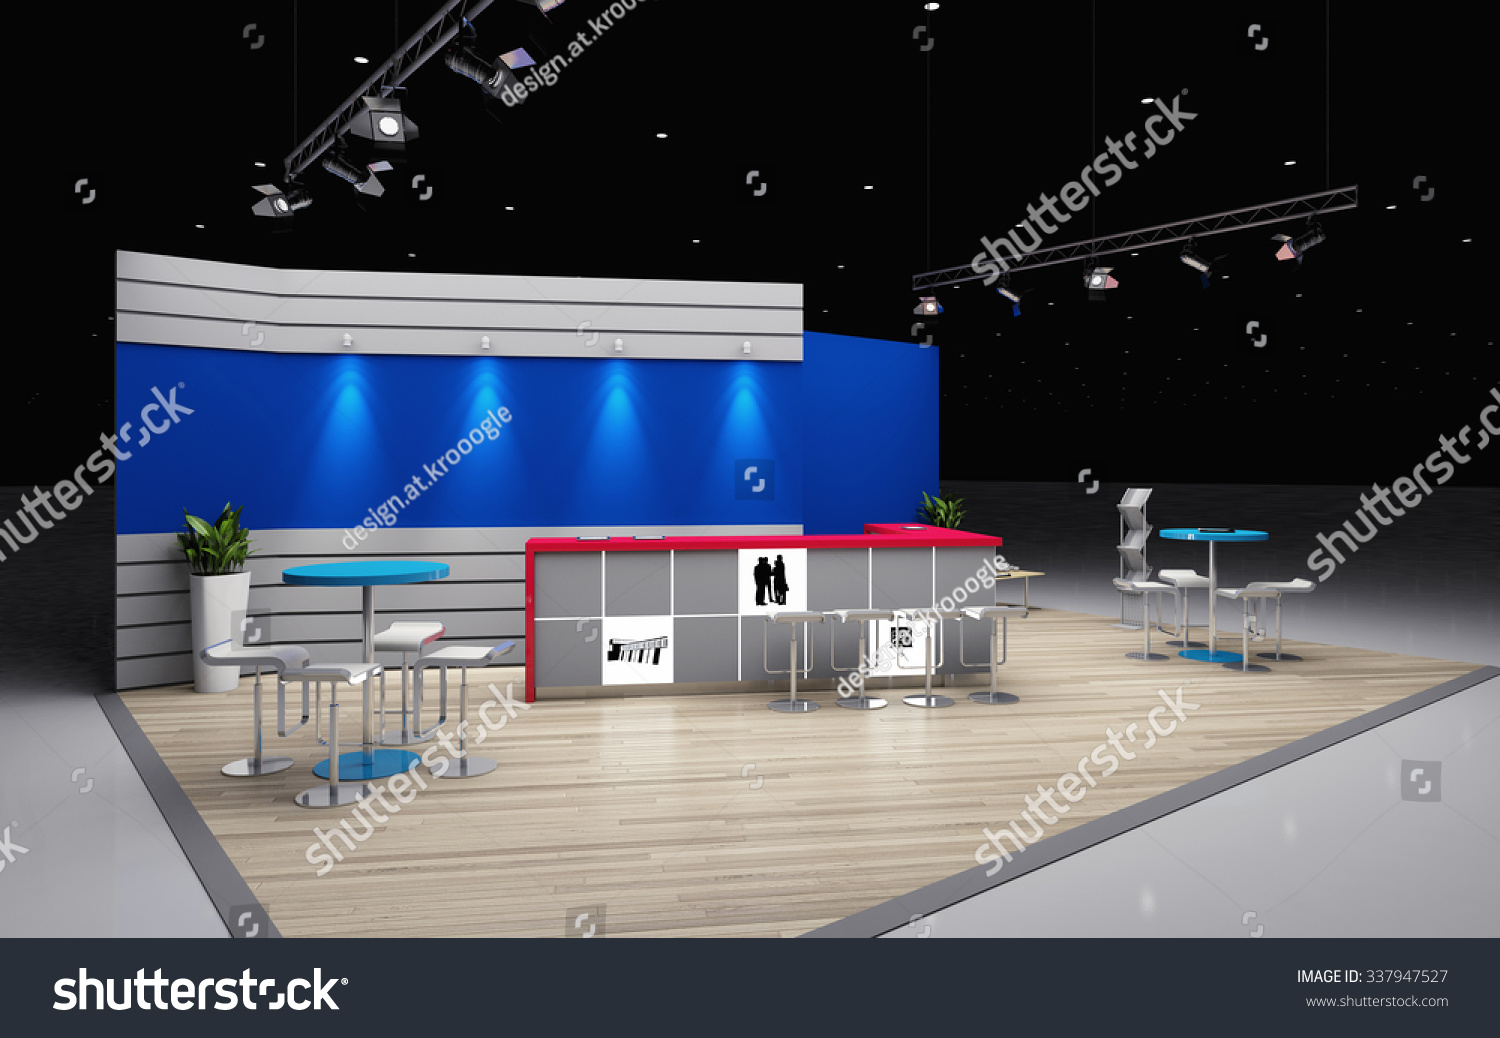 D Rendering Exhibition : Grey and blue exhibition stand d rendering stock photo